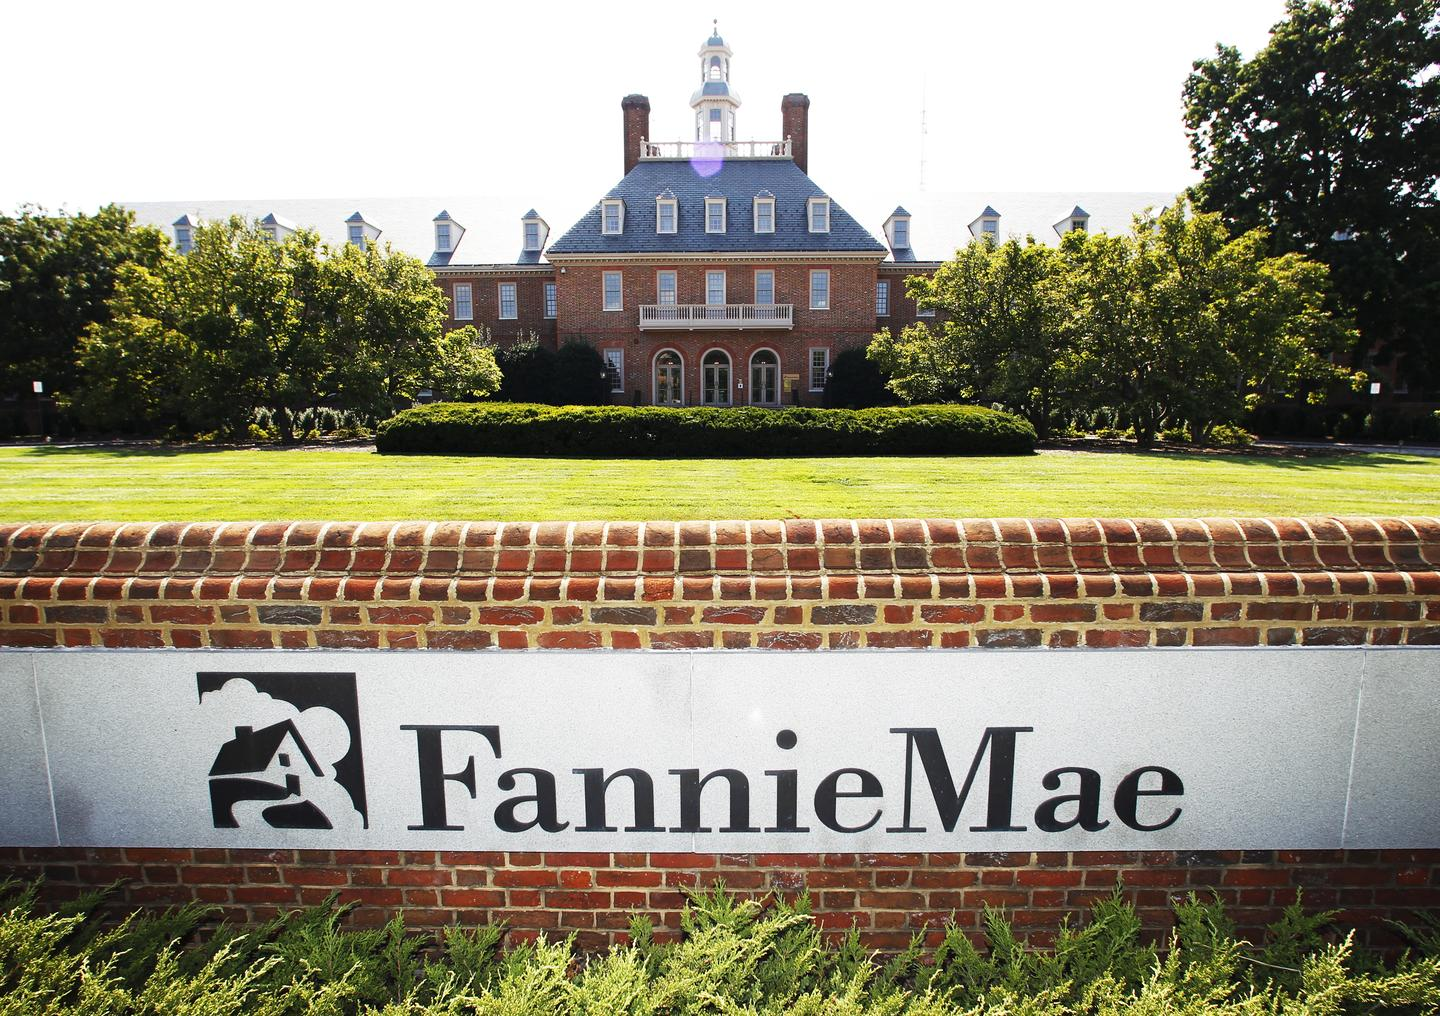 If You Believe In Dodd-Frank, You Can't Also Believe In Fannie, Freddie